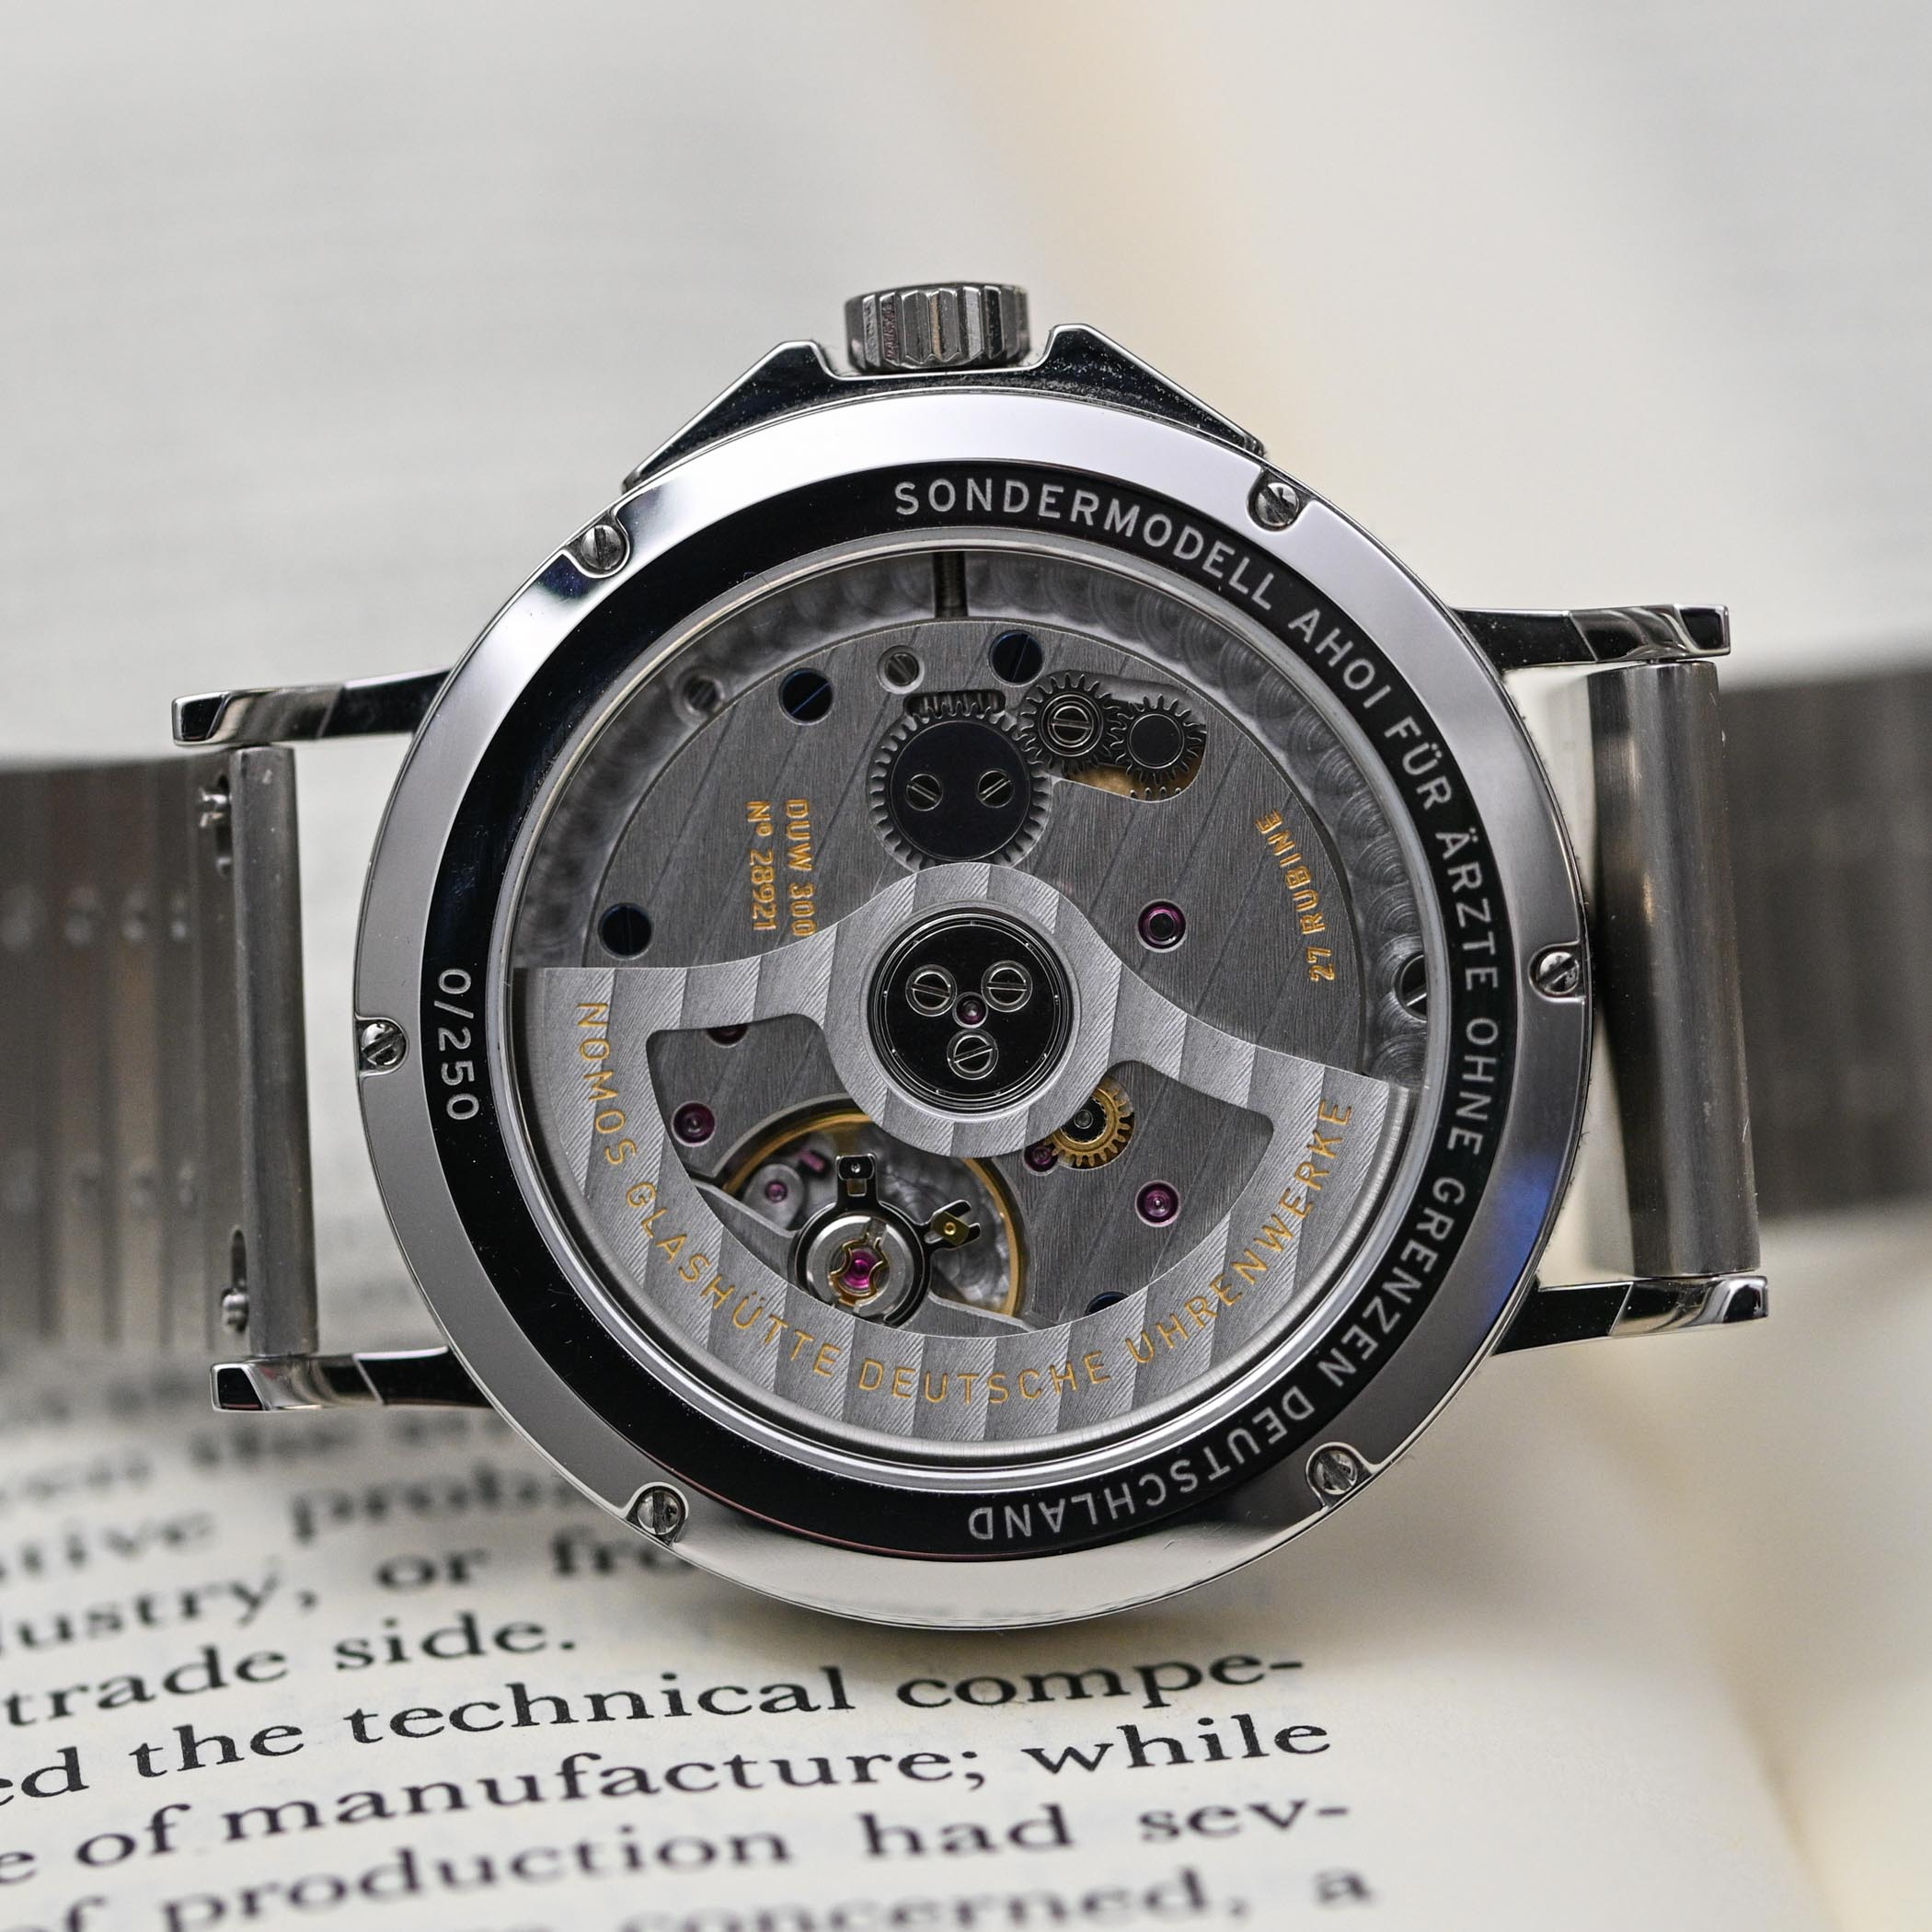 NOMOS Ahoi Neomatik Doctors Without Borders Limited Edition - review - 8